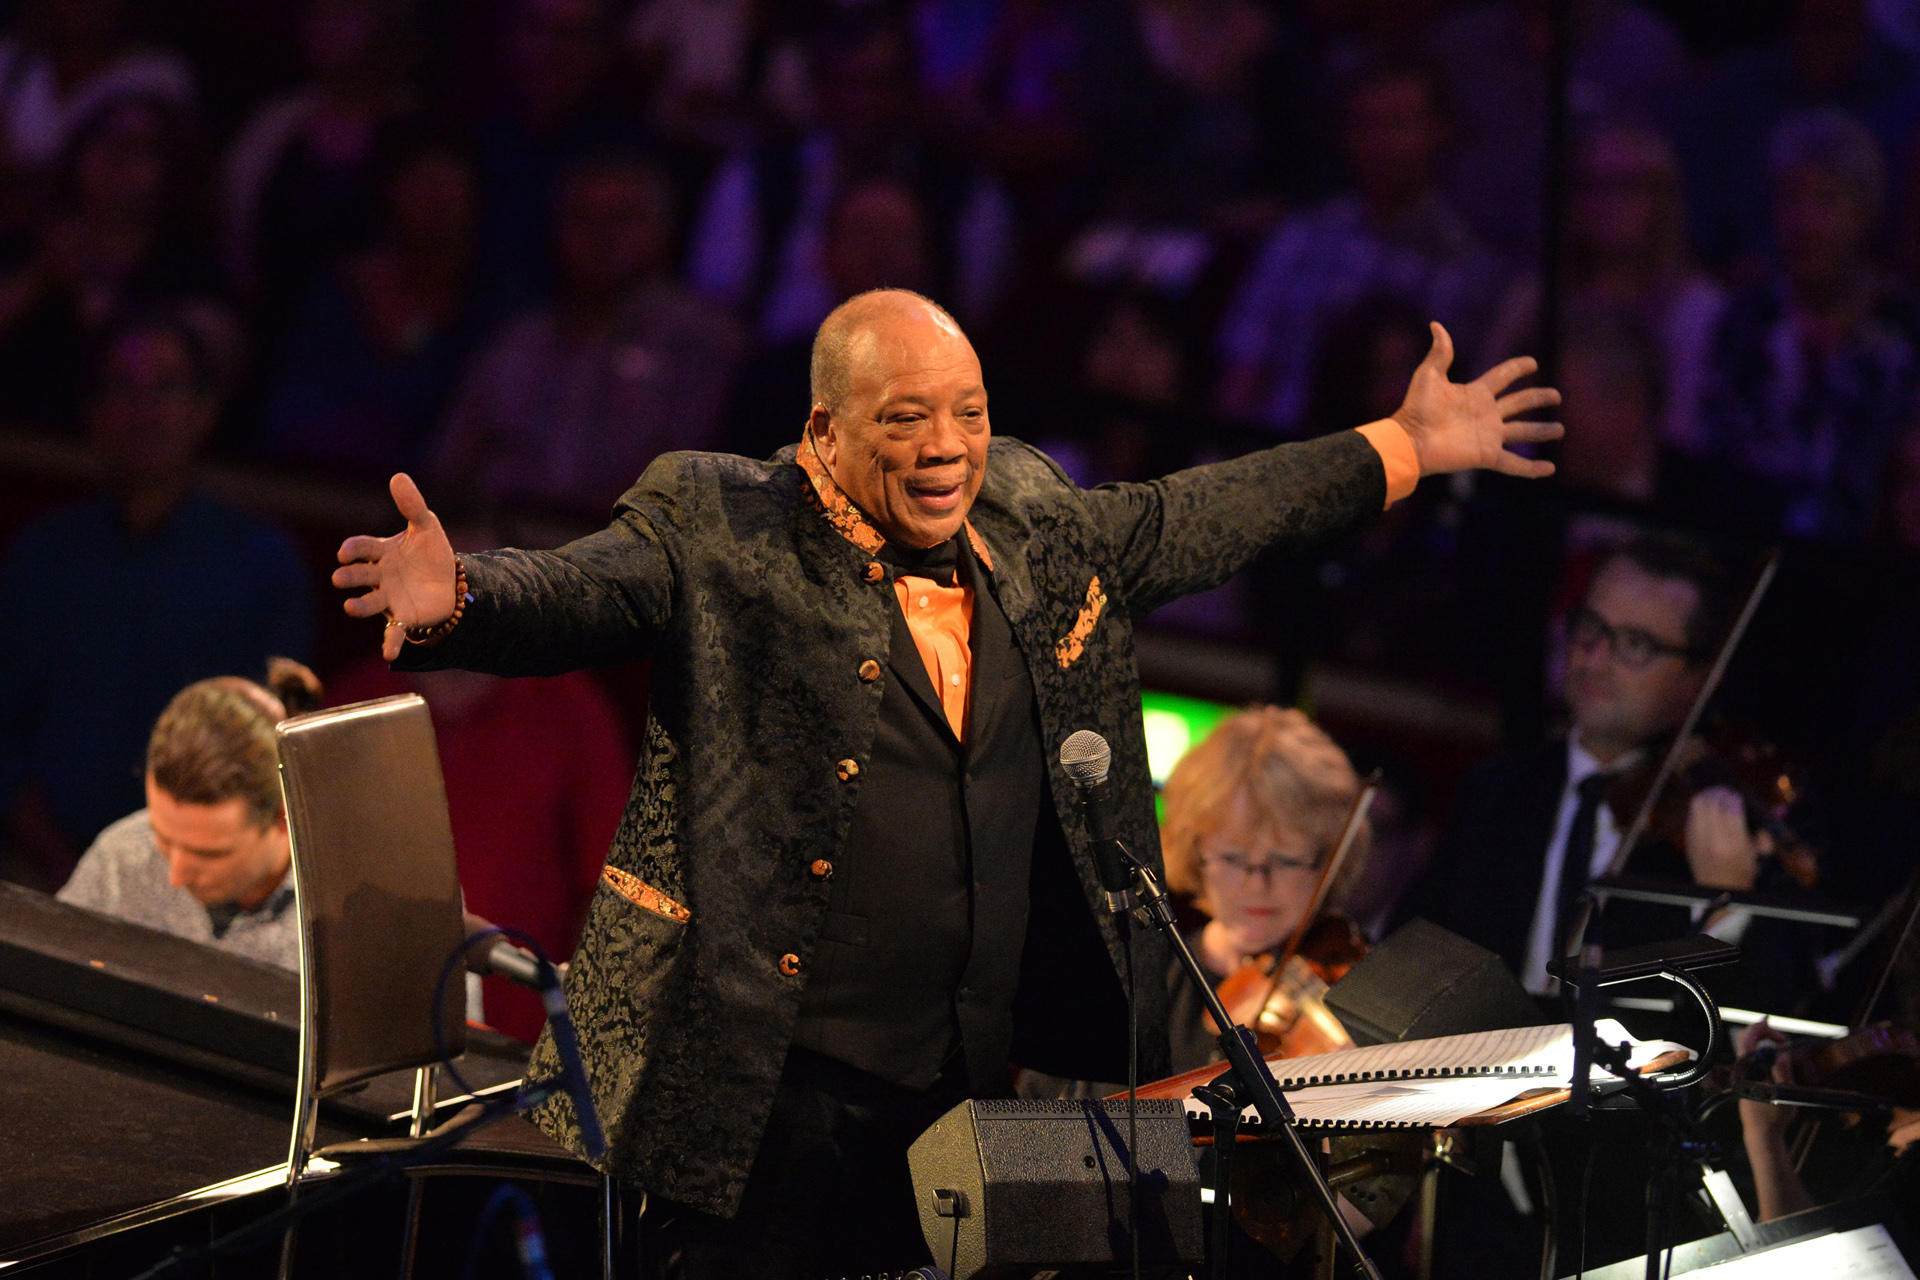 Prom 49: The Quincy Jones Prom at the Royal Albert Hall with the Metropole Orkest conducted by Jules Buckley (featuring Richard Bona: voice/bass guitar, Jacob Collier: voice/piano/synth, Alfredo Rodriguez: piano and Cory Henry: jazz organ and Laura Mvula) on 11th August 2016.